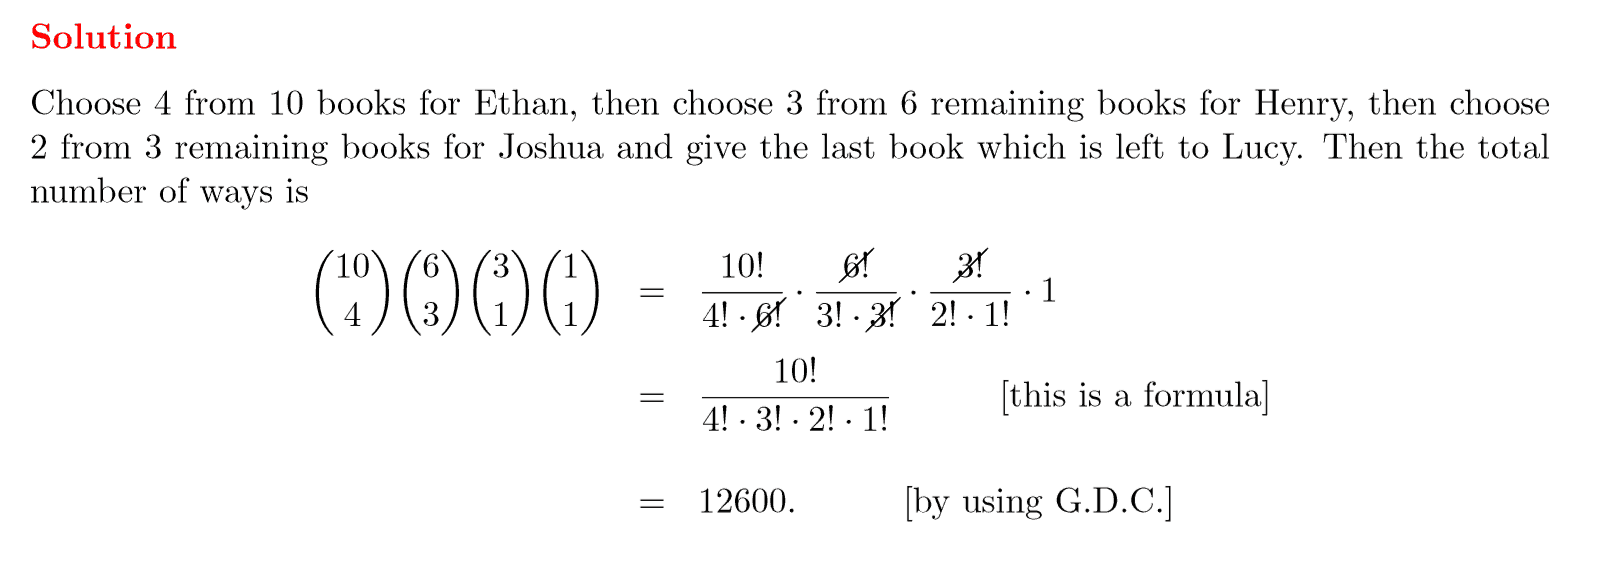 math hl type 1 shadows To evaluate 103 6 we'd type 103 ^ 6, or 103 y x 6 try it out - you should get an answer around 11940523 try it out - you should get an answer around 11940523 try it now.